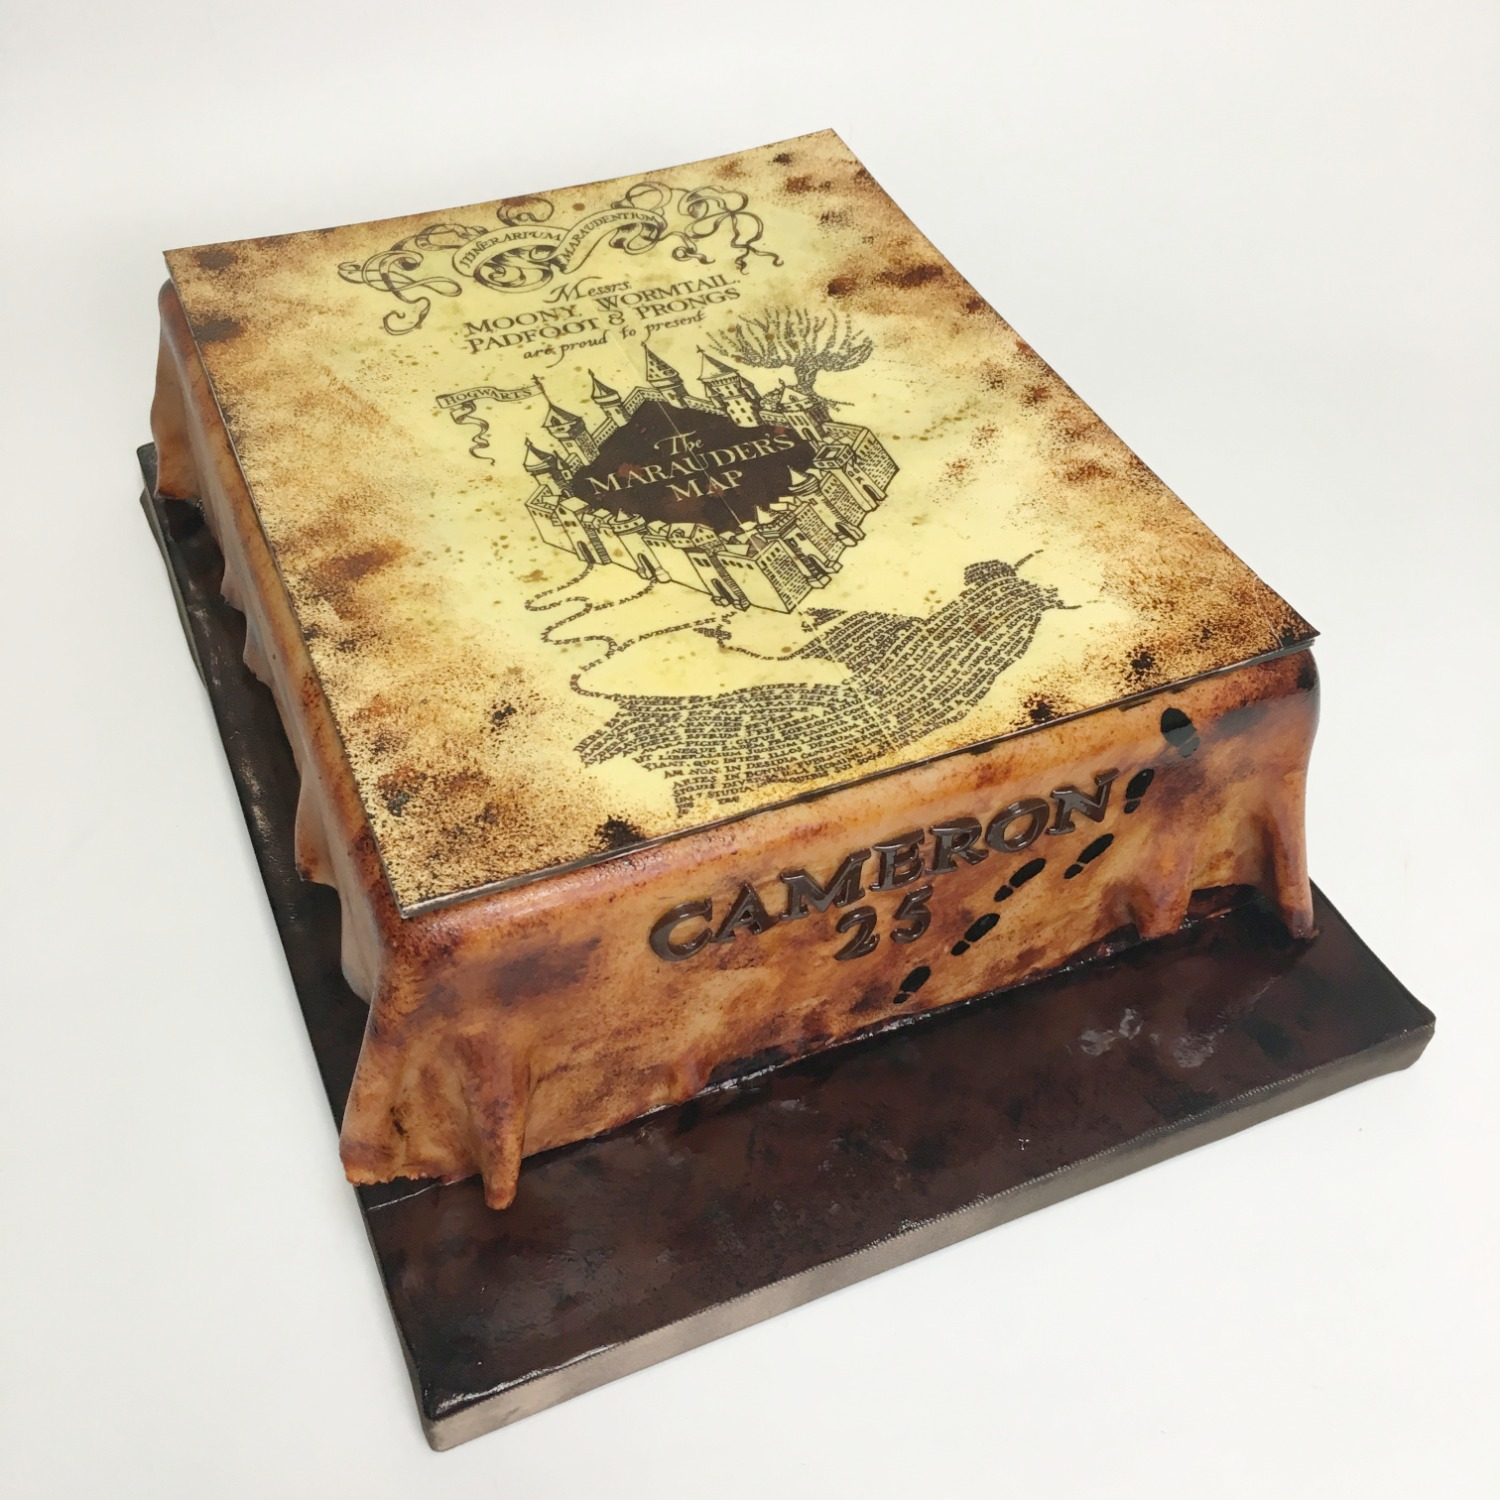 Marauder's map edible print